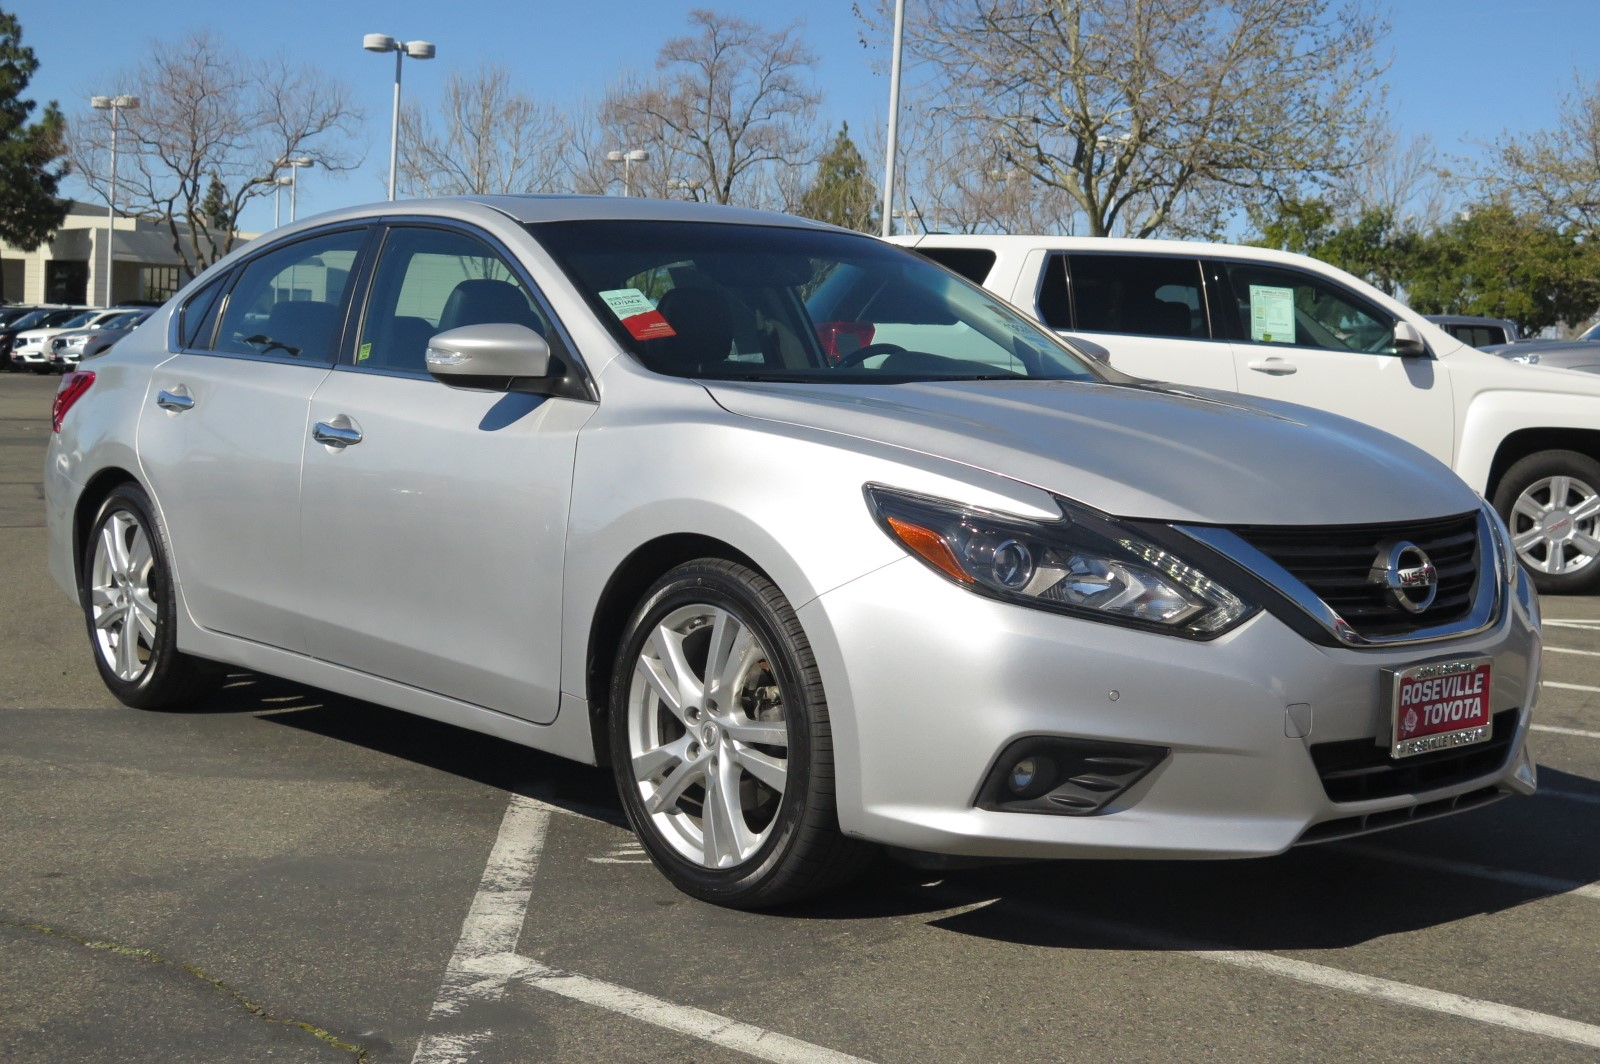 Exceptional Pre Owned 2017 Nissan Altima 3.5 SL